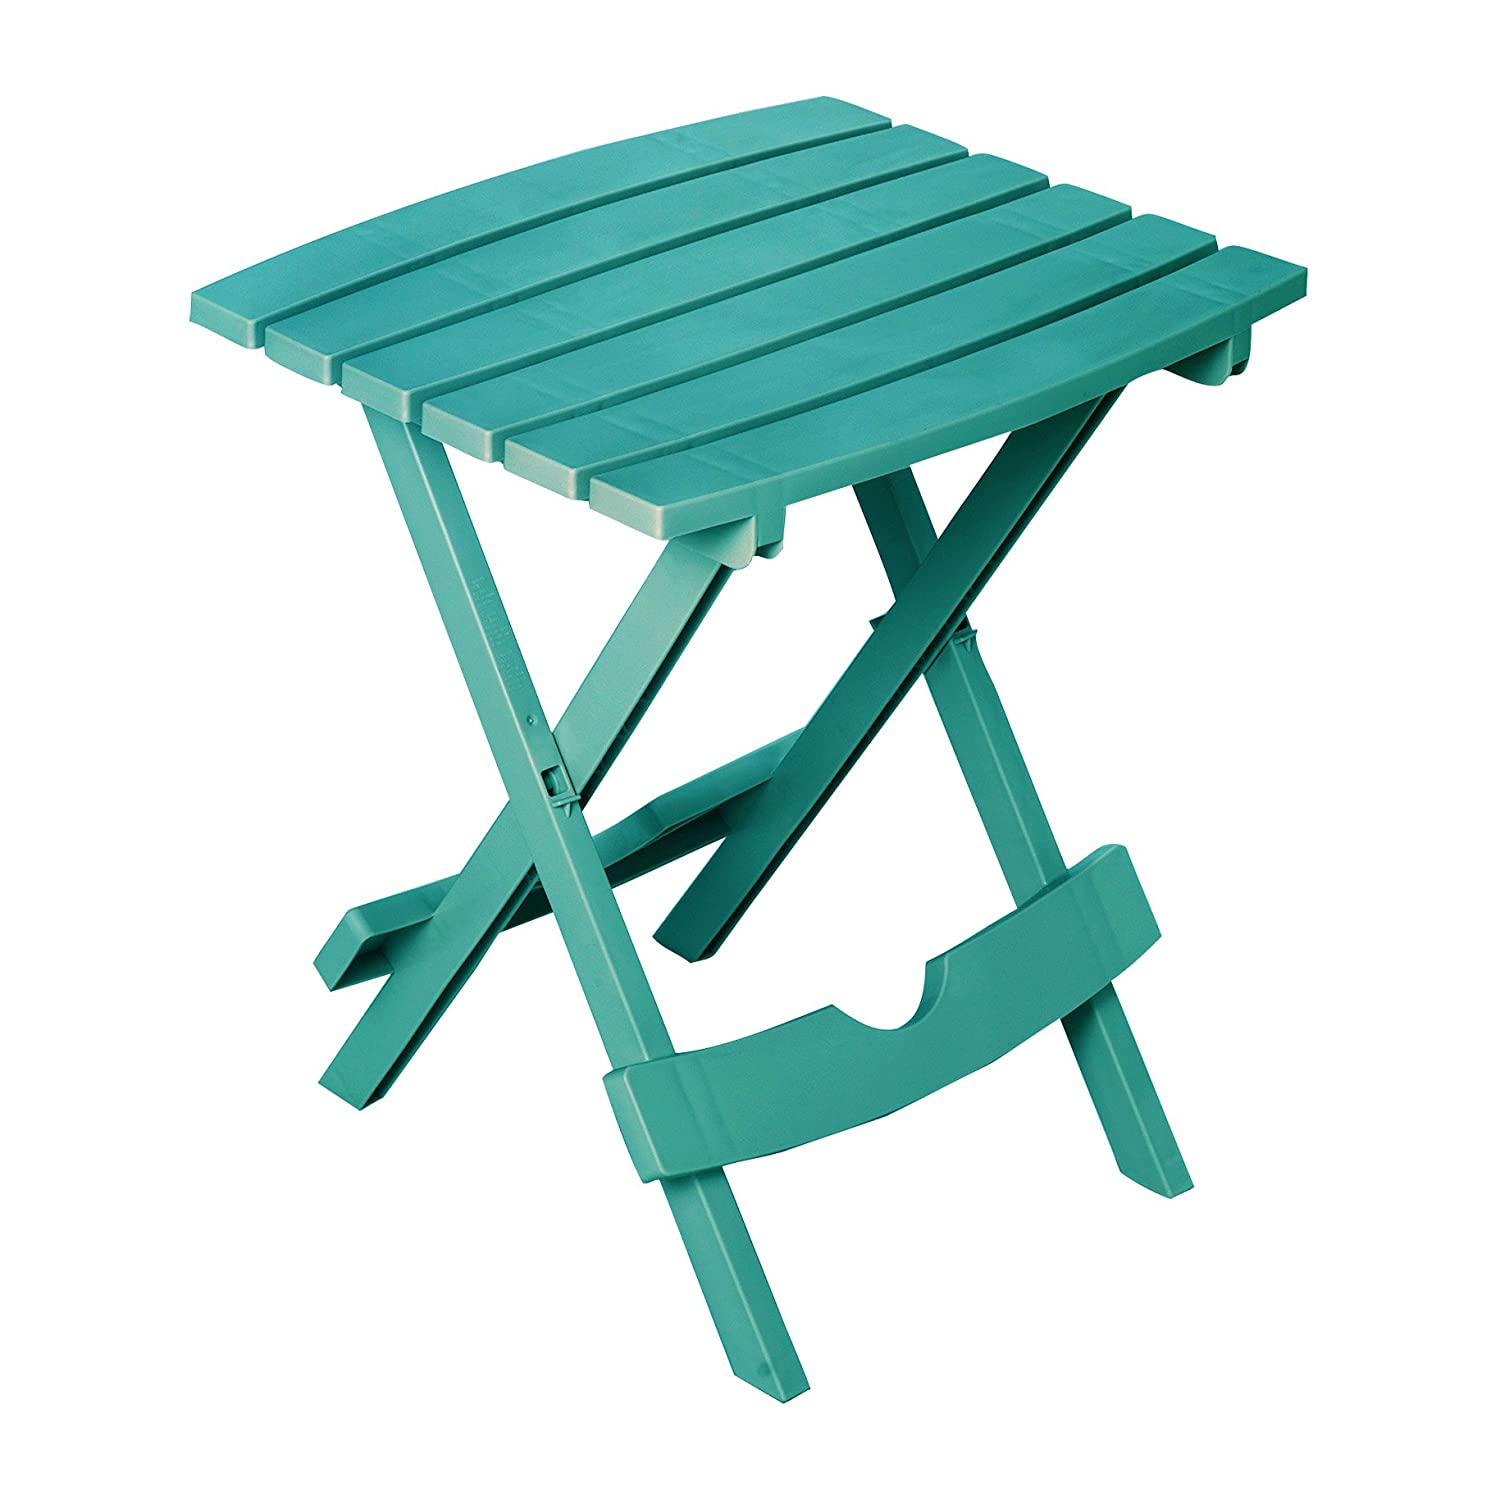 Top 10 Best Folding Step Stool Reviews in 2020 10